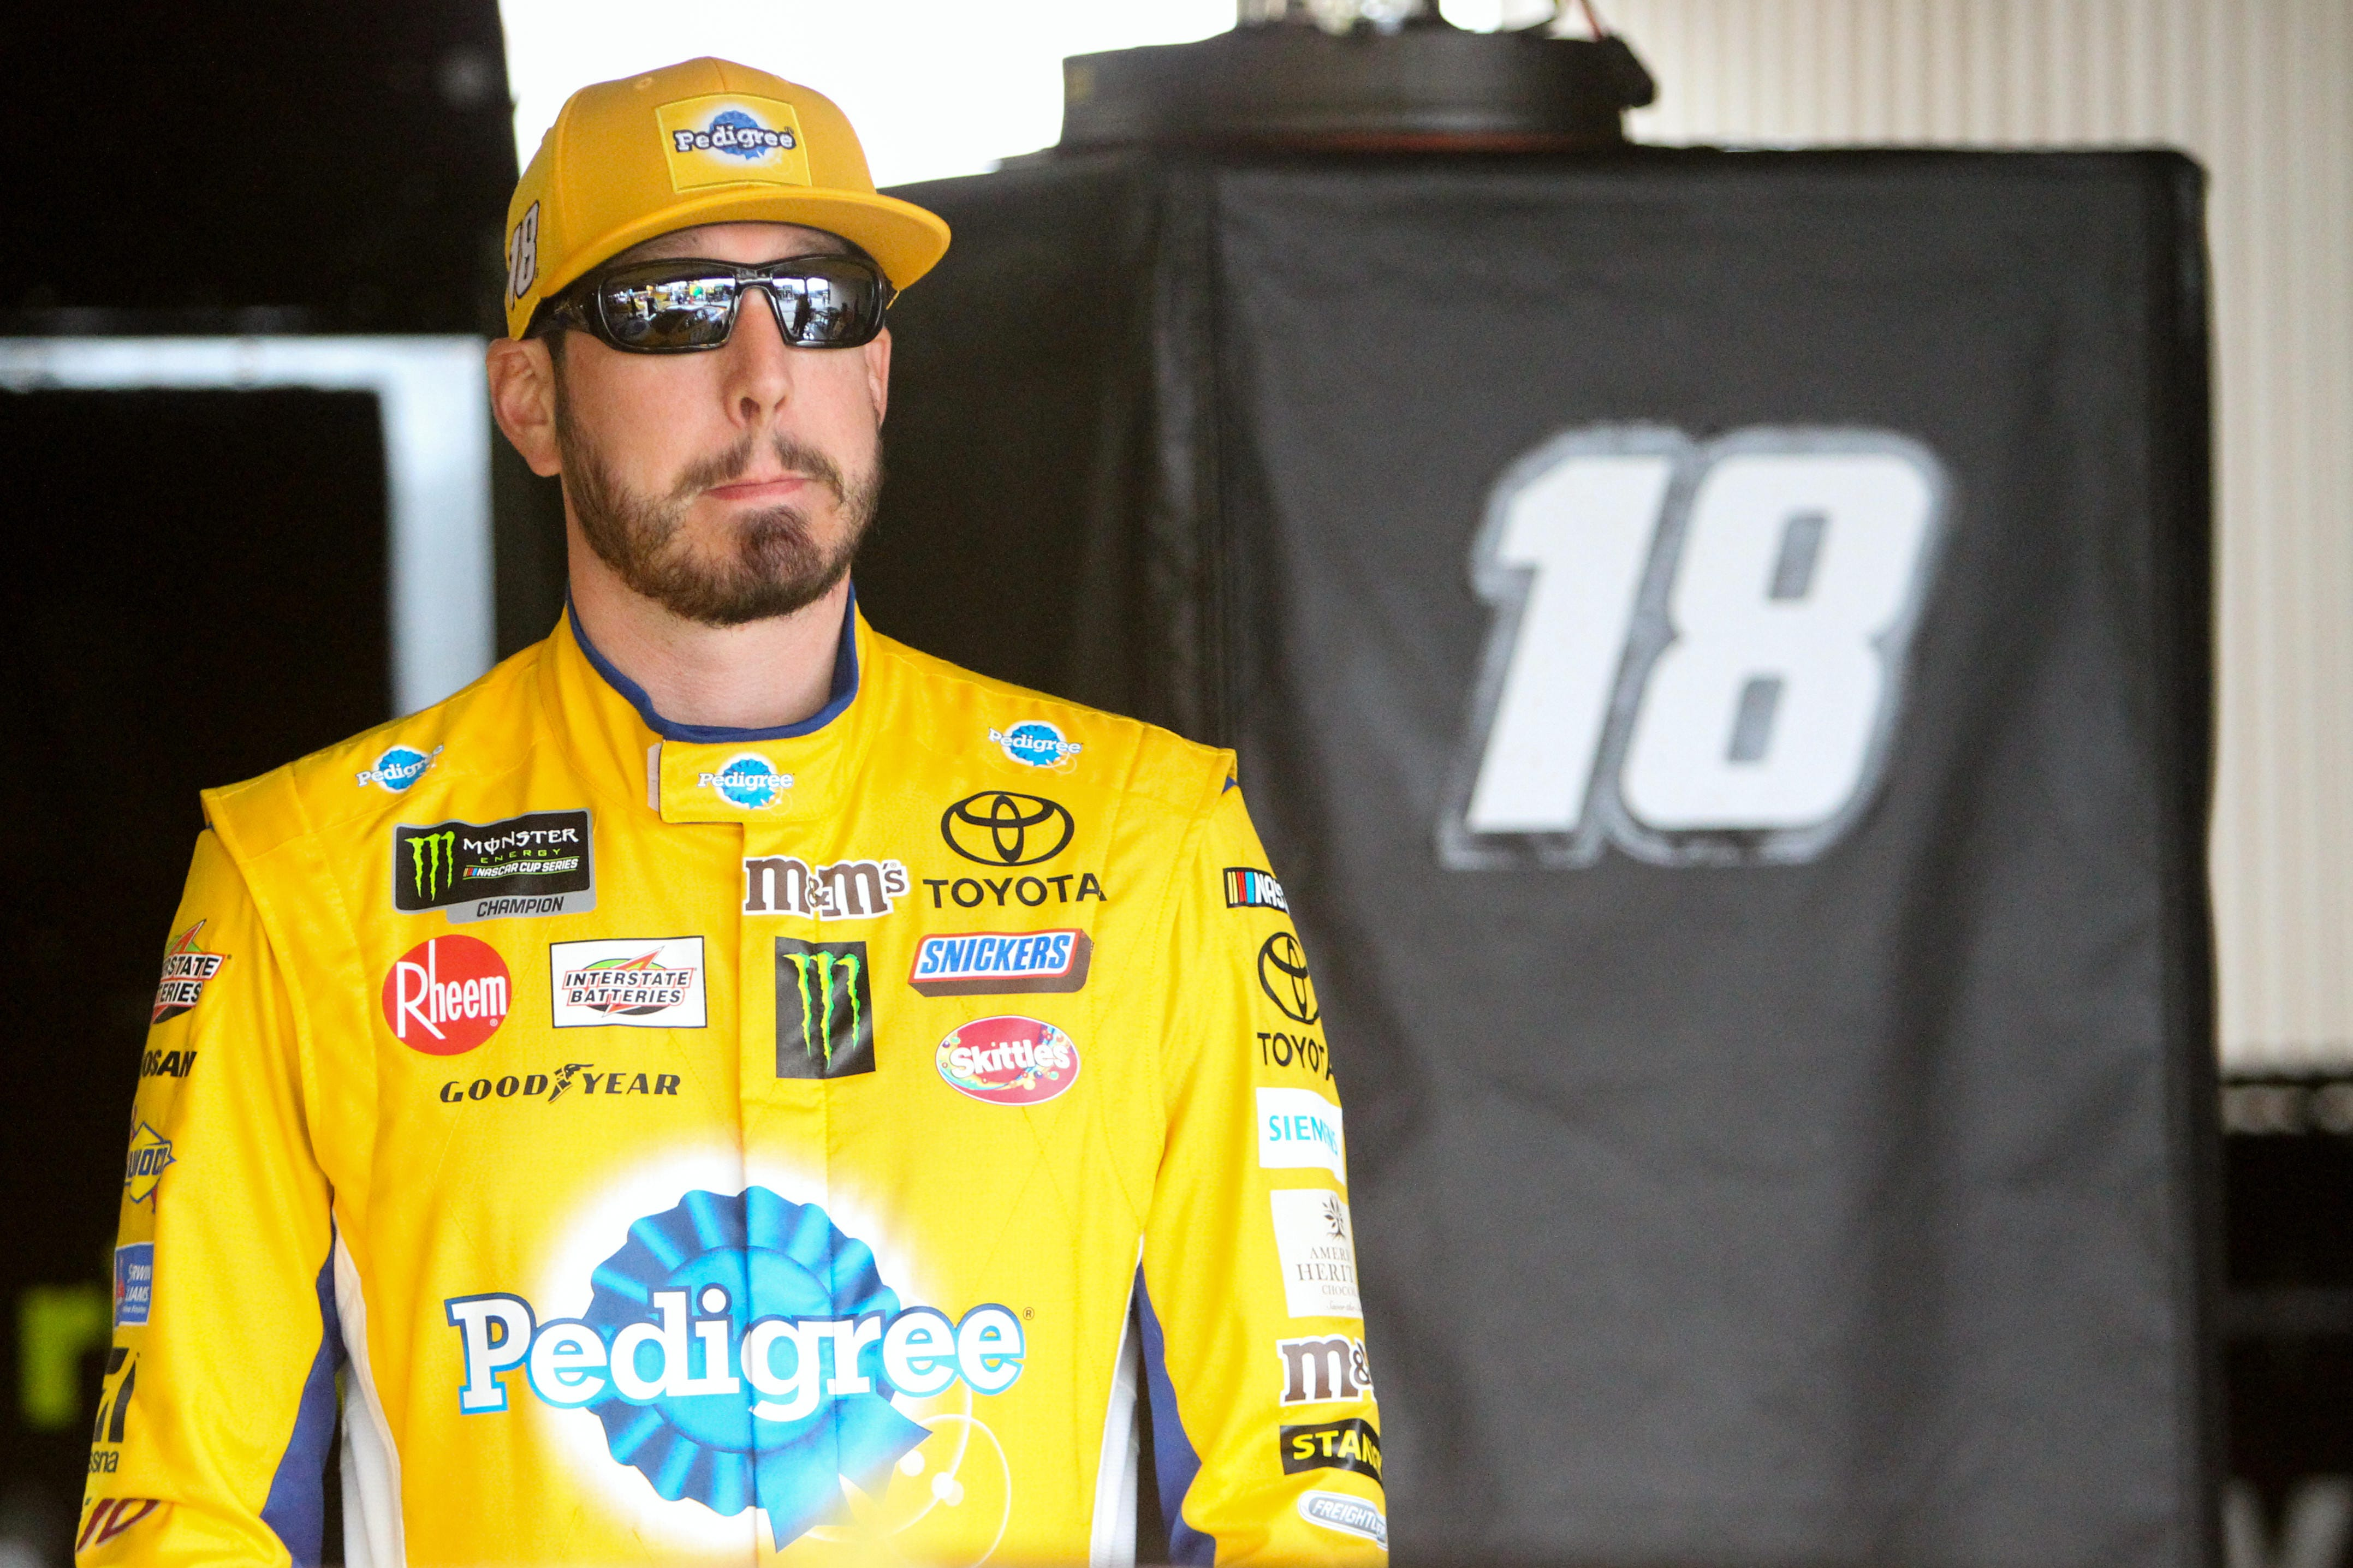 Ed Carpenter interested in having Kyle Busch race Indianapolis 500 for his team